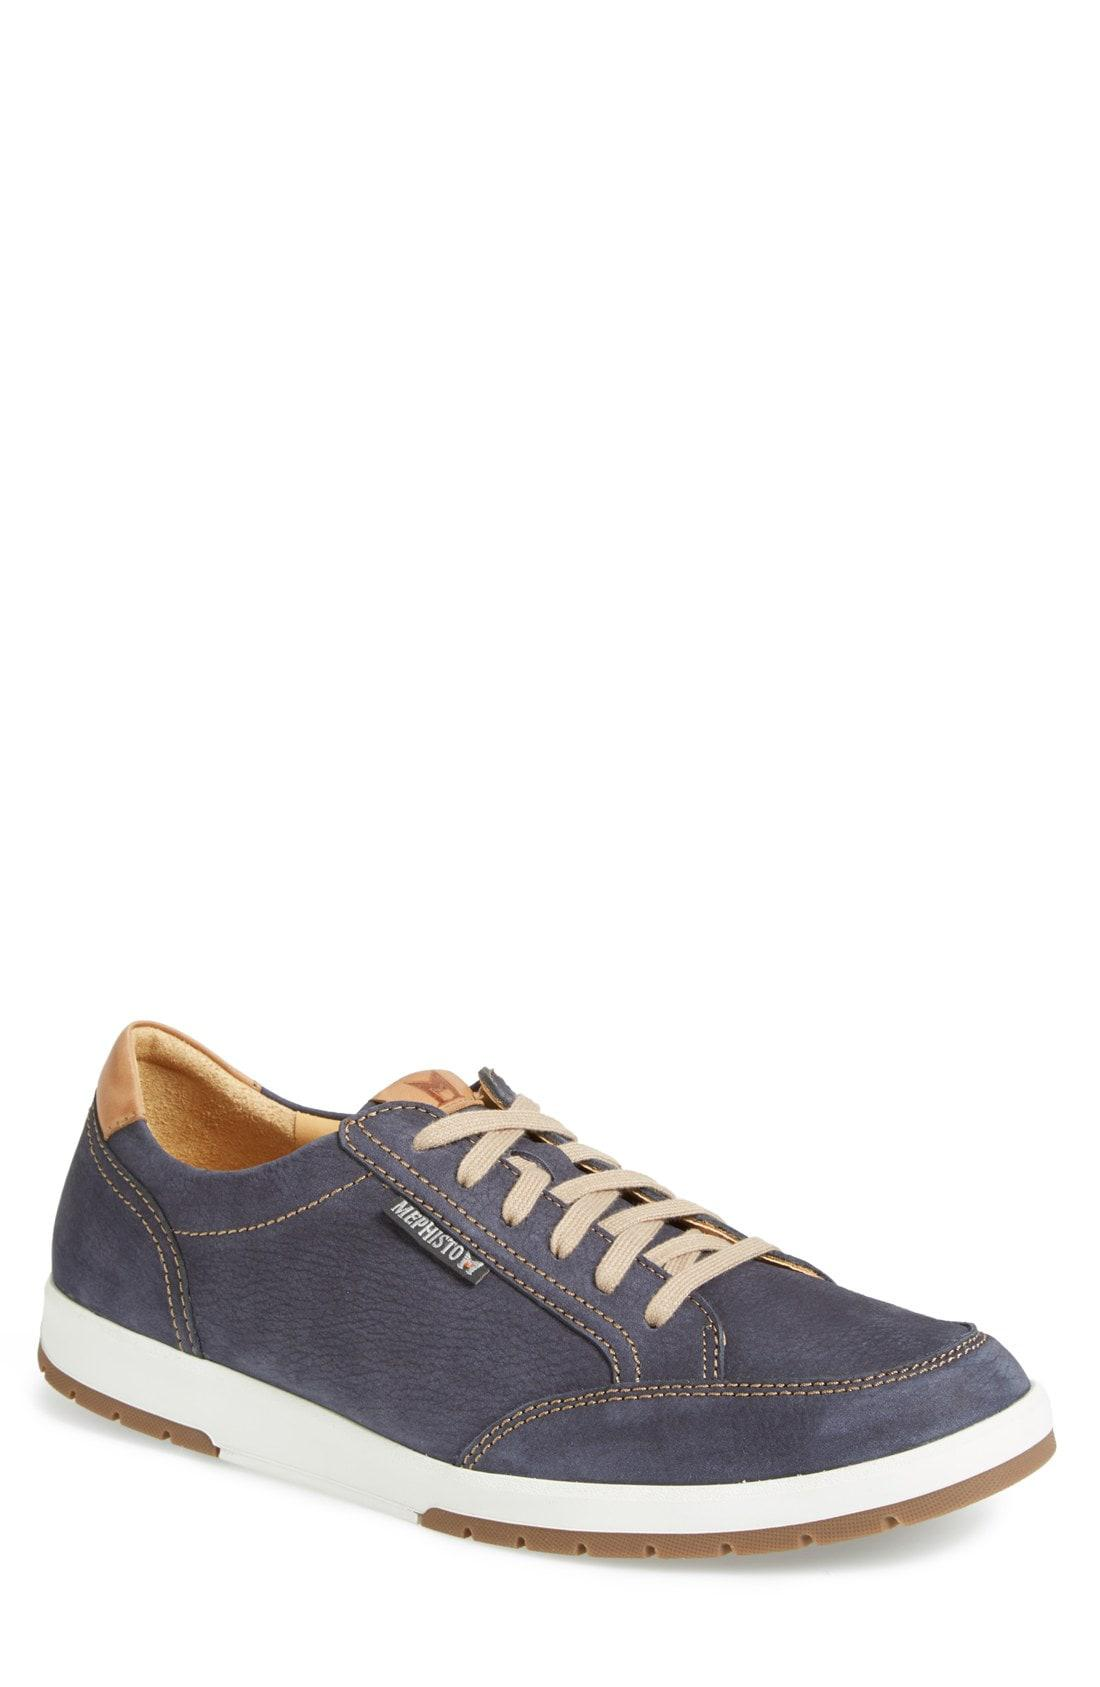 fc46a7409d4 Lyst - Mephisto  Ludo  Suede Sneaker in Blue for Men